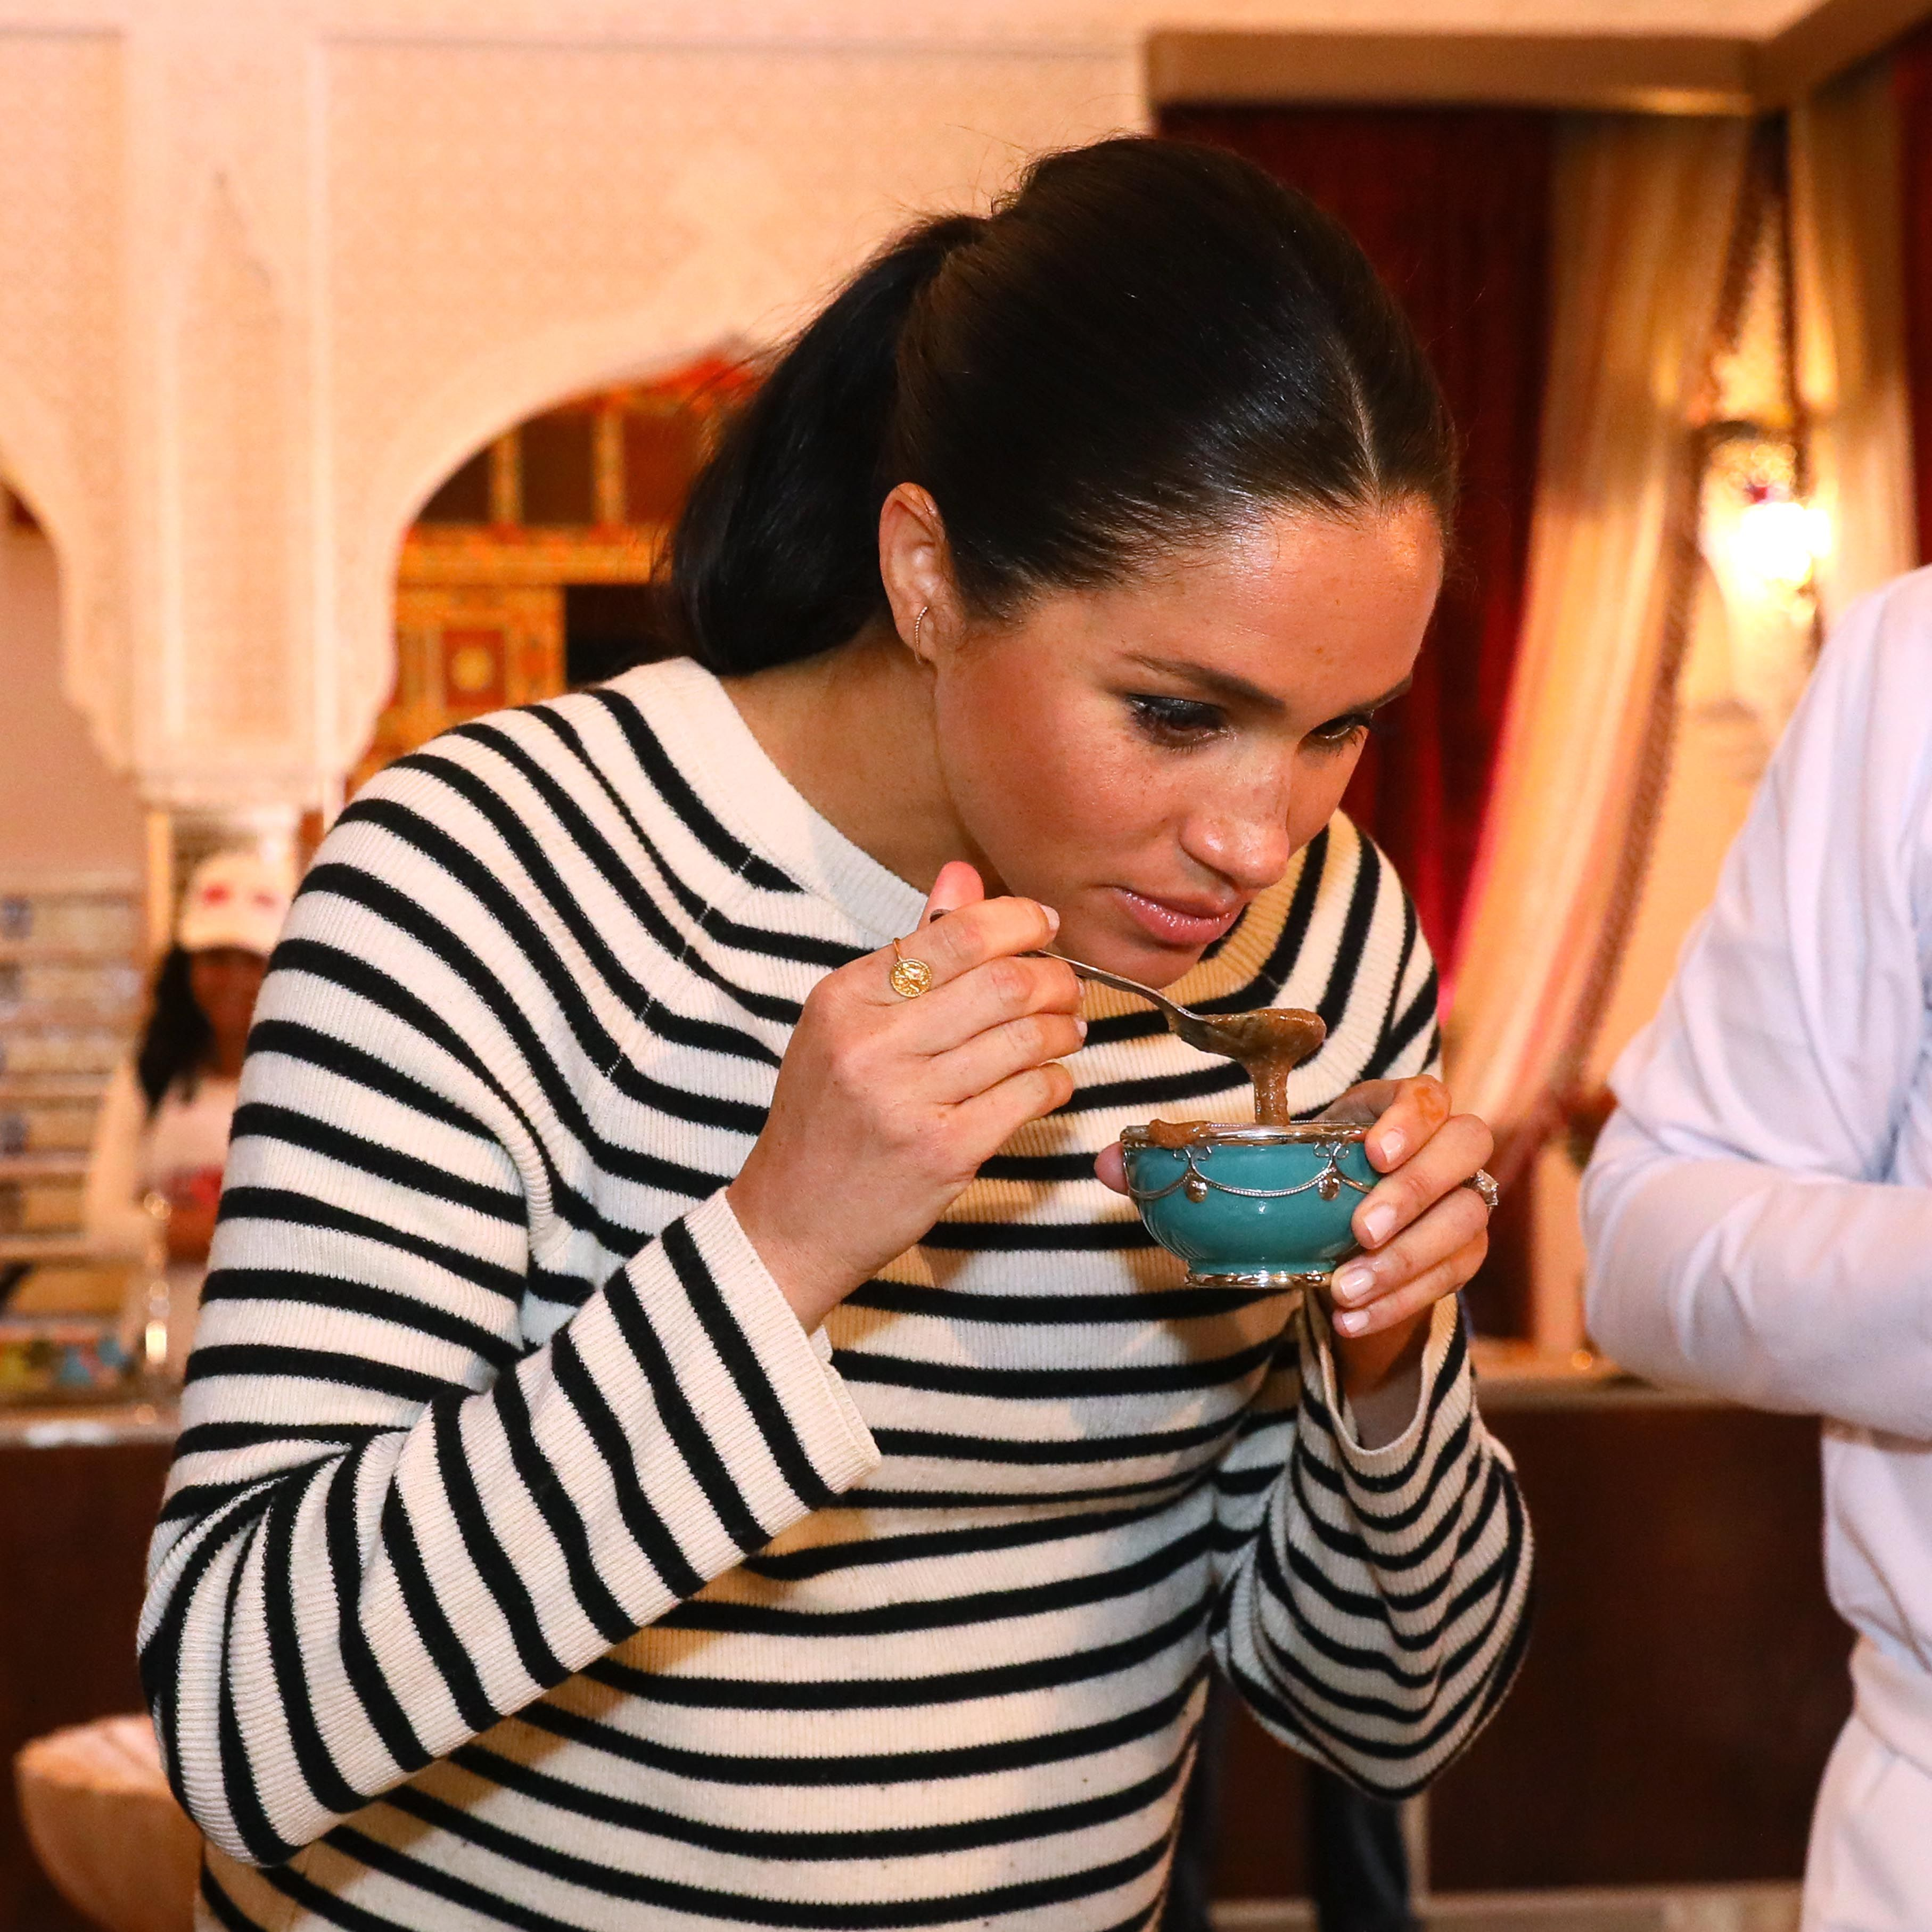 Meghan Markle's Daily Diet Looks Ridiculously Delicious and Healthy